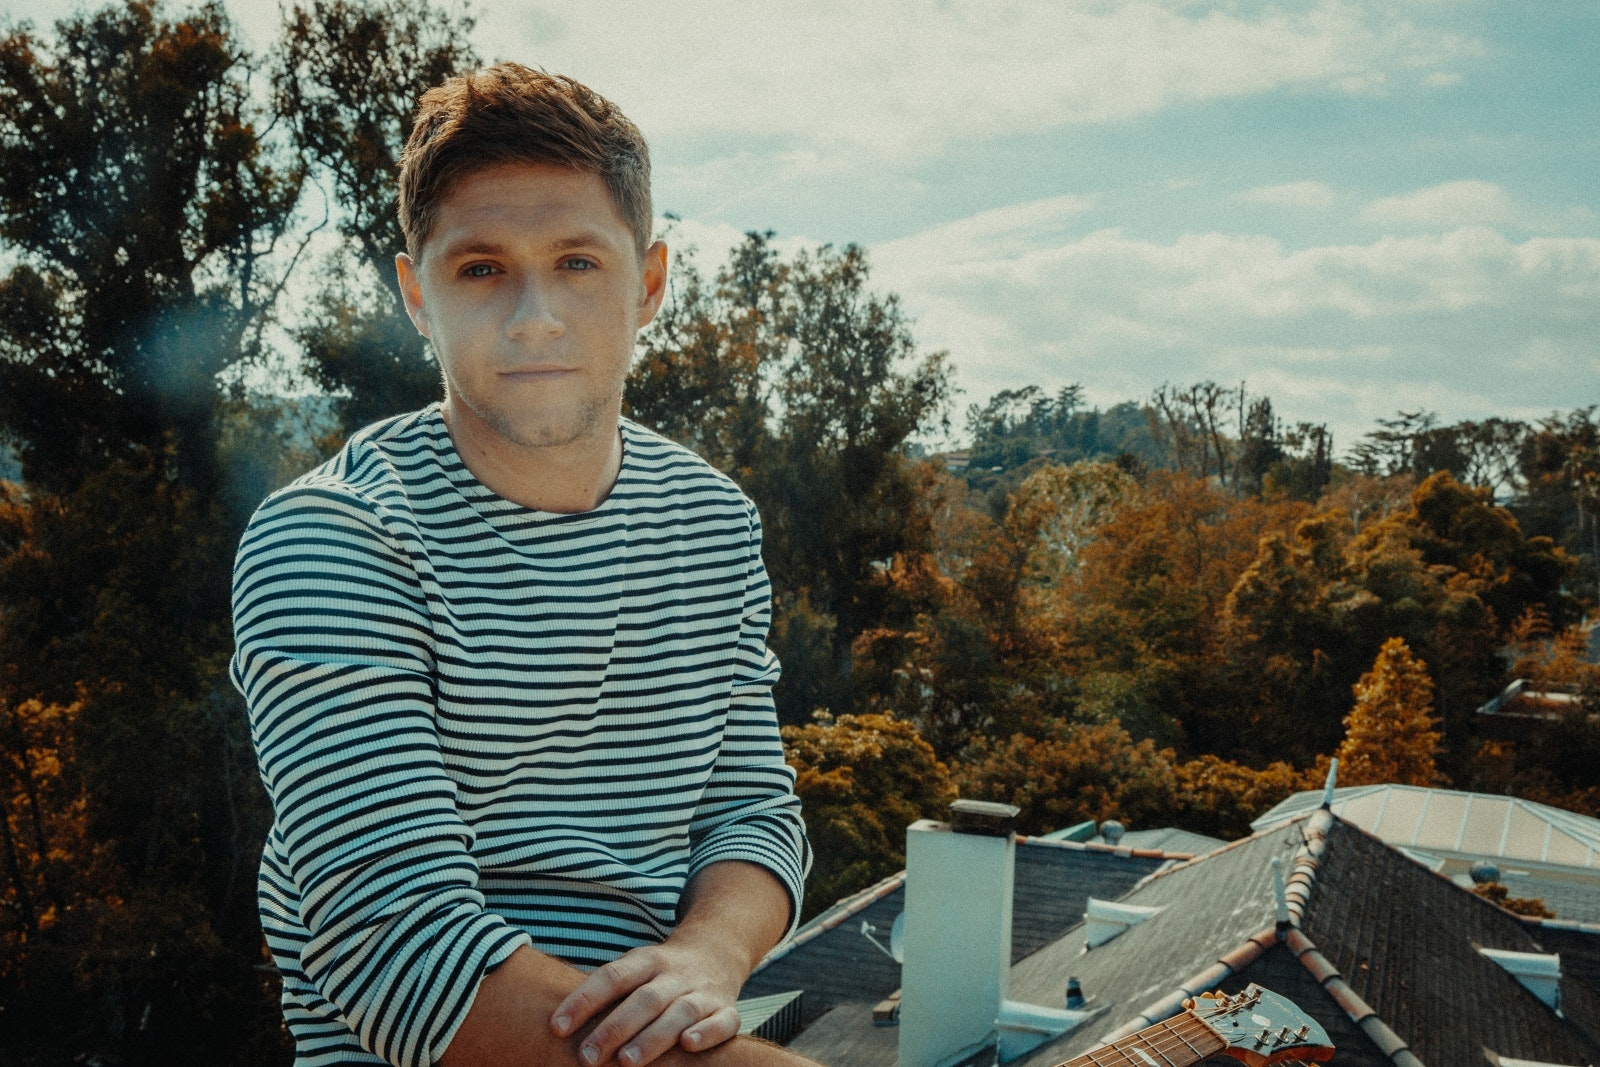 Niall Horan teases at new album